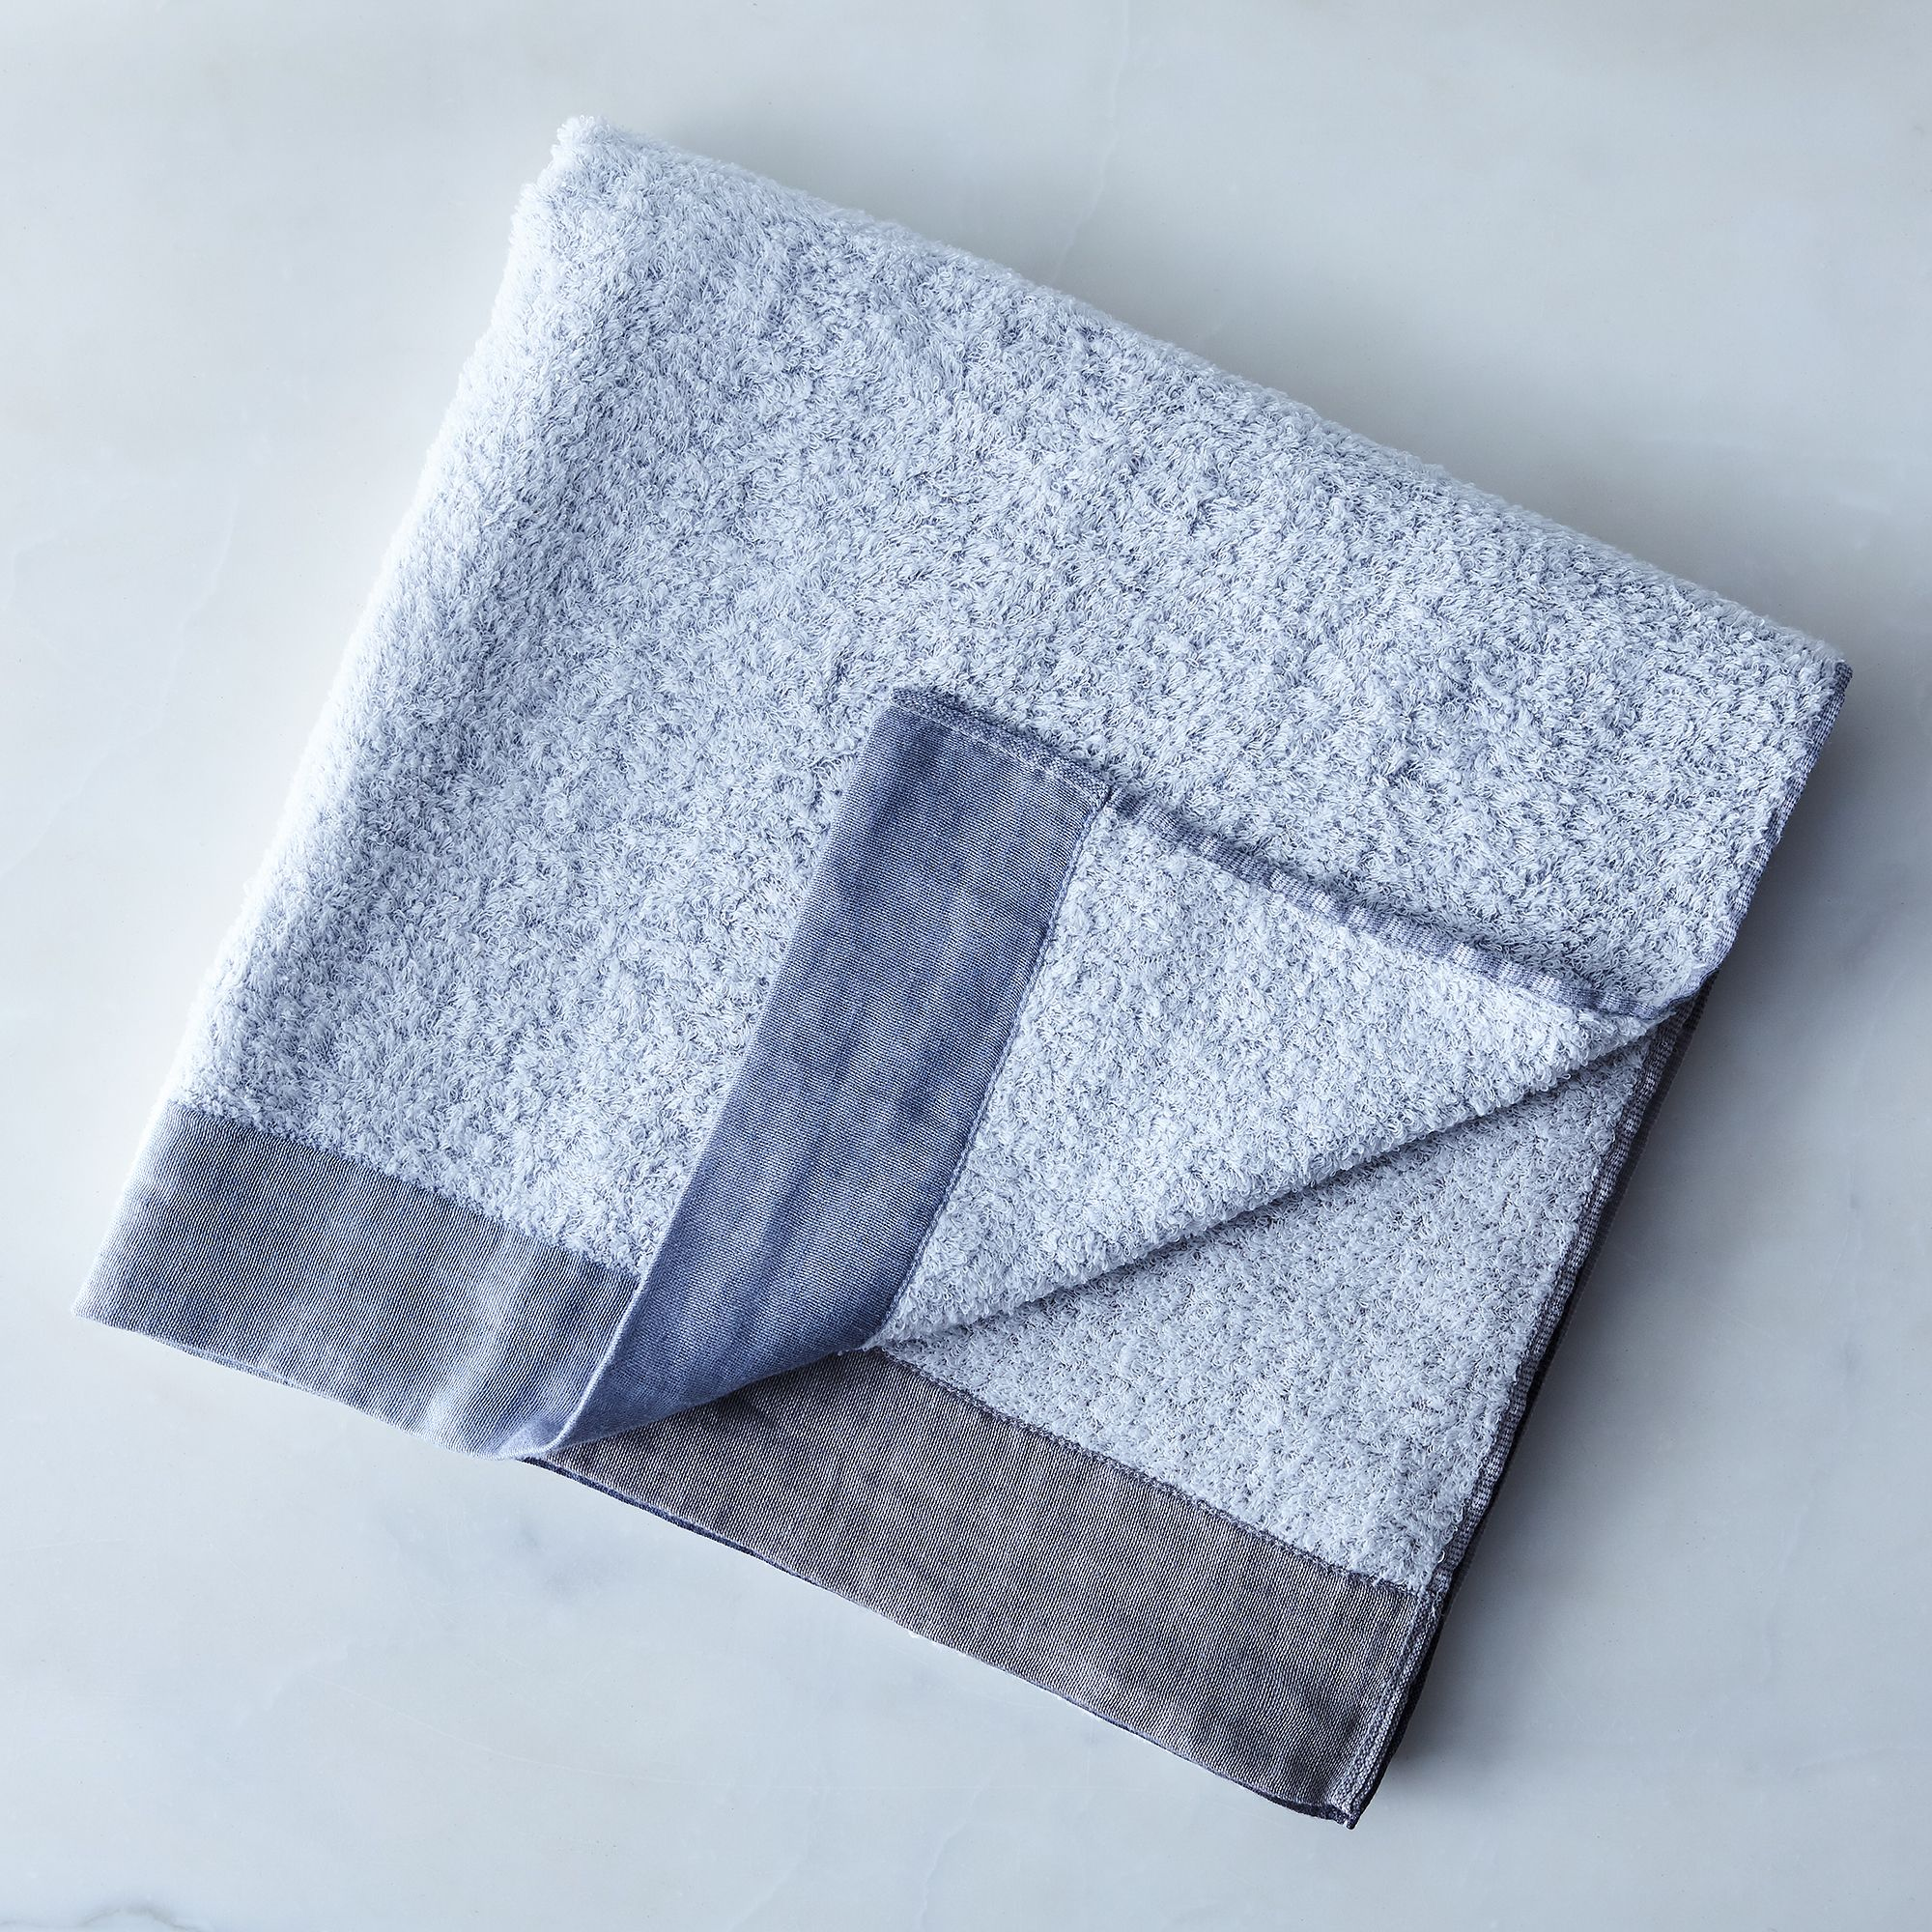 F64b6c38 aa4e 4d63 9e68 5bdcb8e7eb90  2017 0404 morihata international linen and cotton blend colorblock towels grey bath towel silo rocky luten 0442